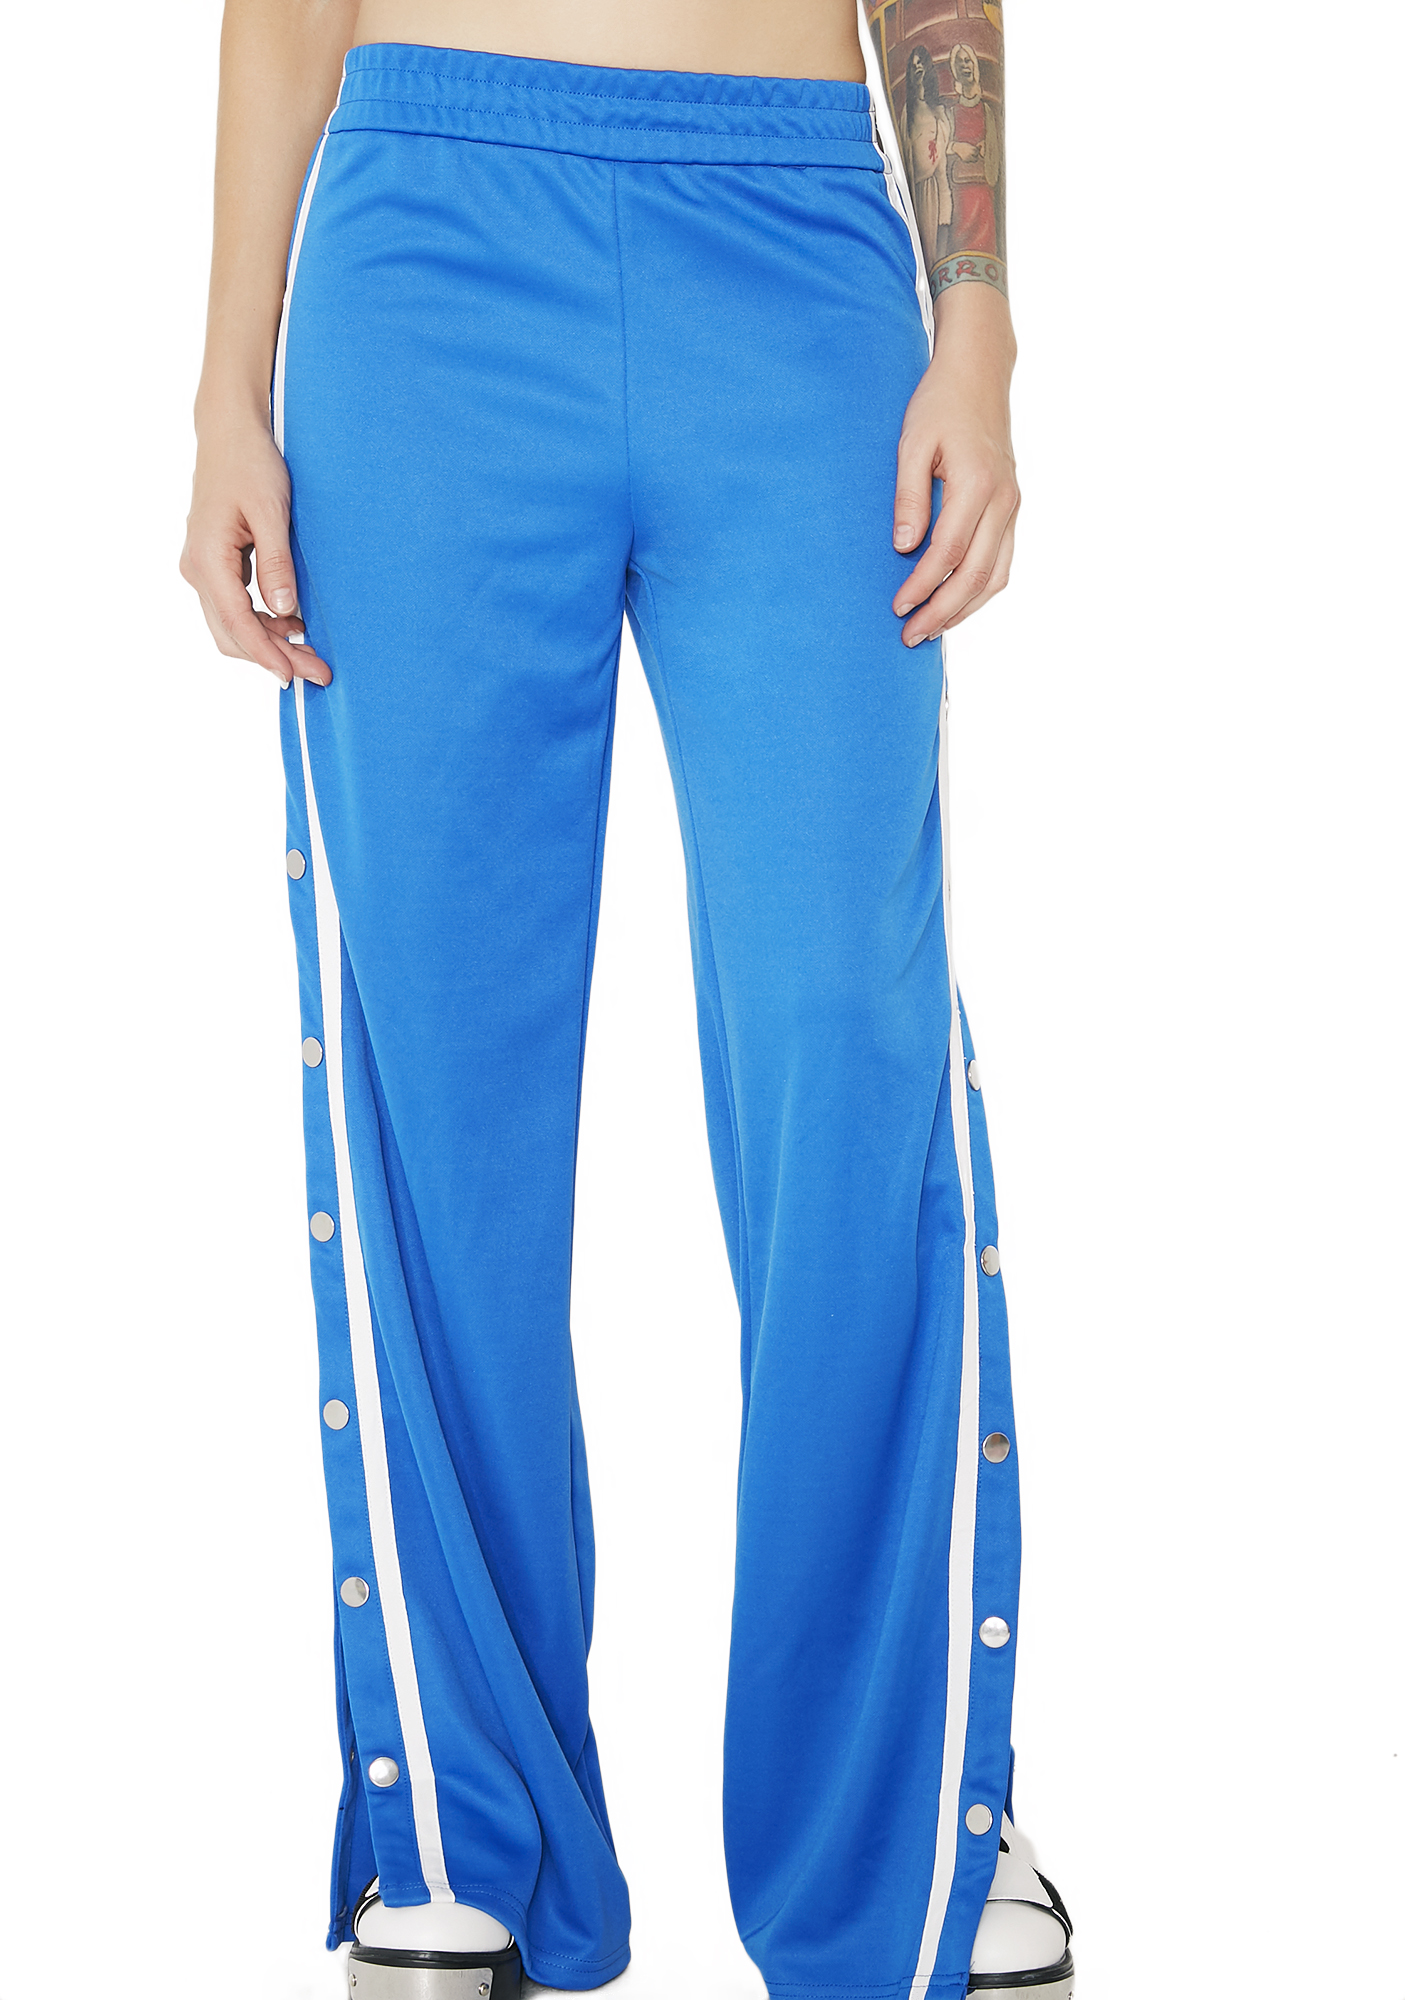 Snap Button Blue Track Pants